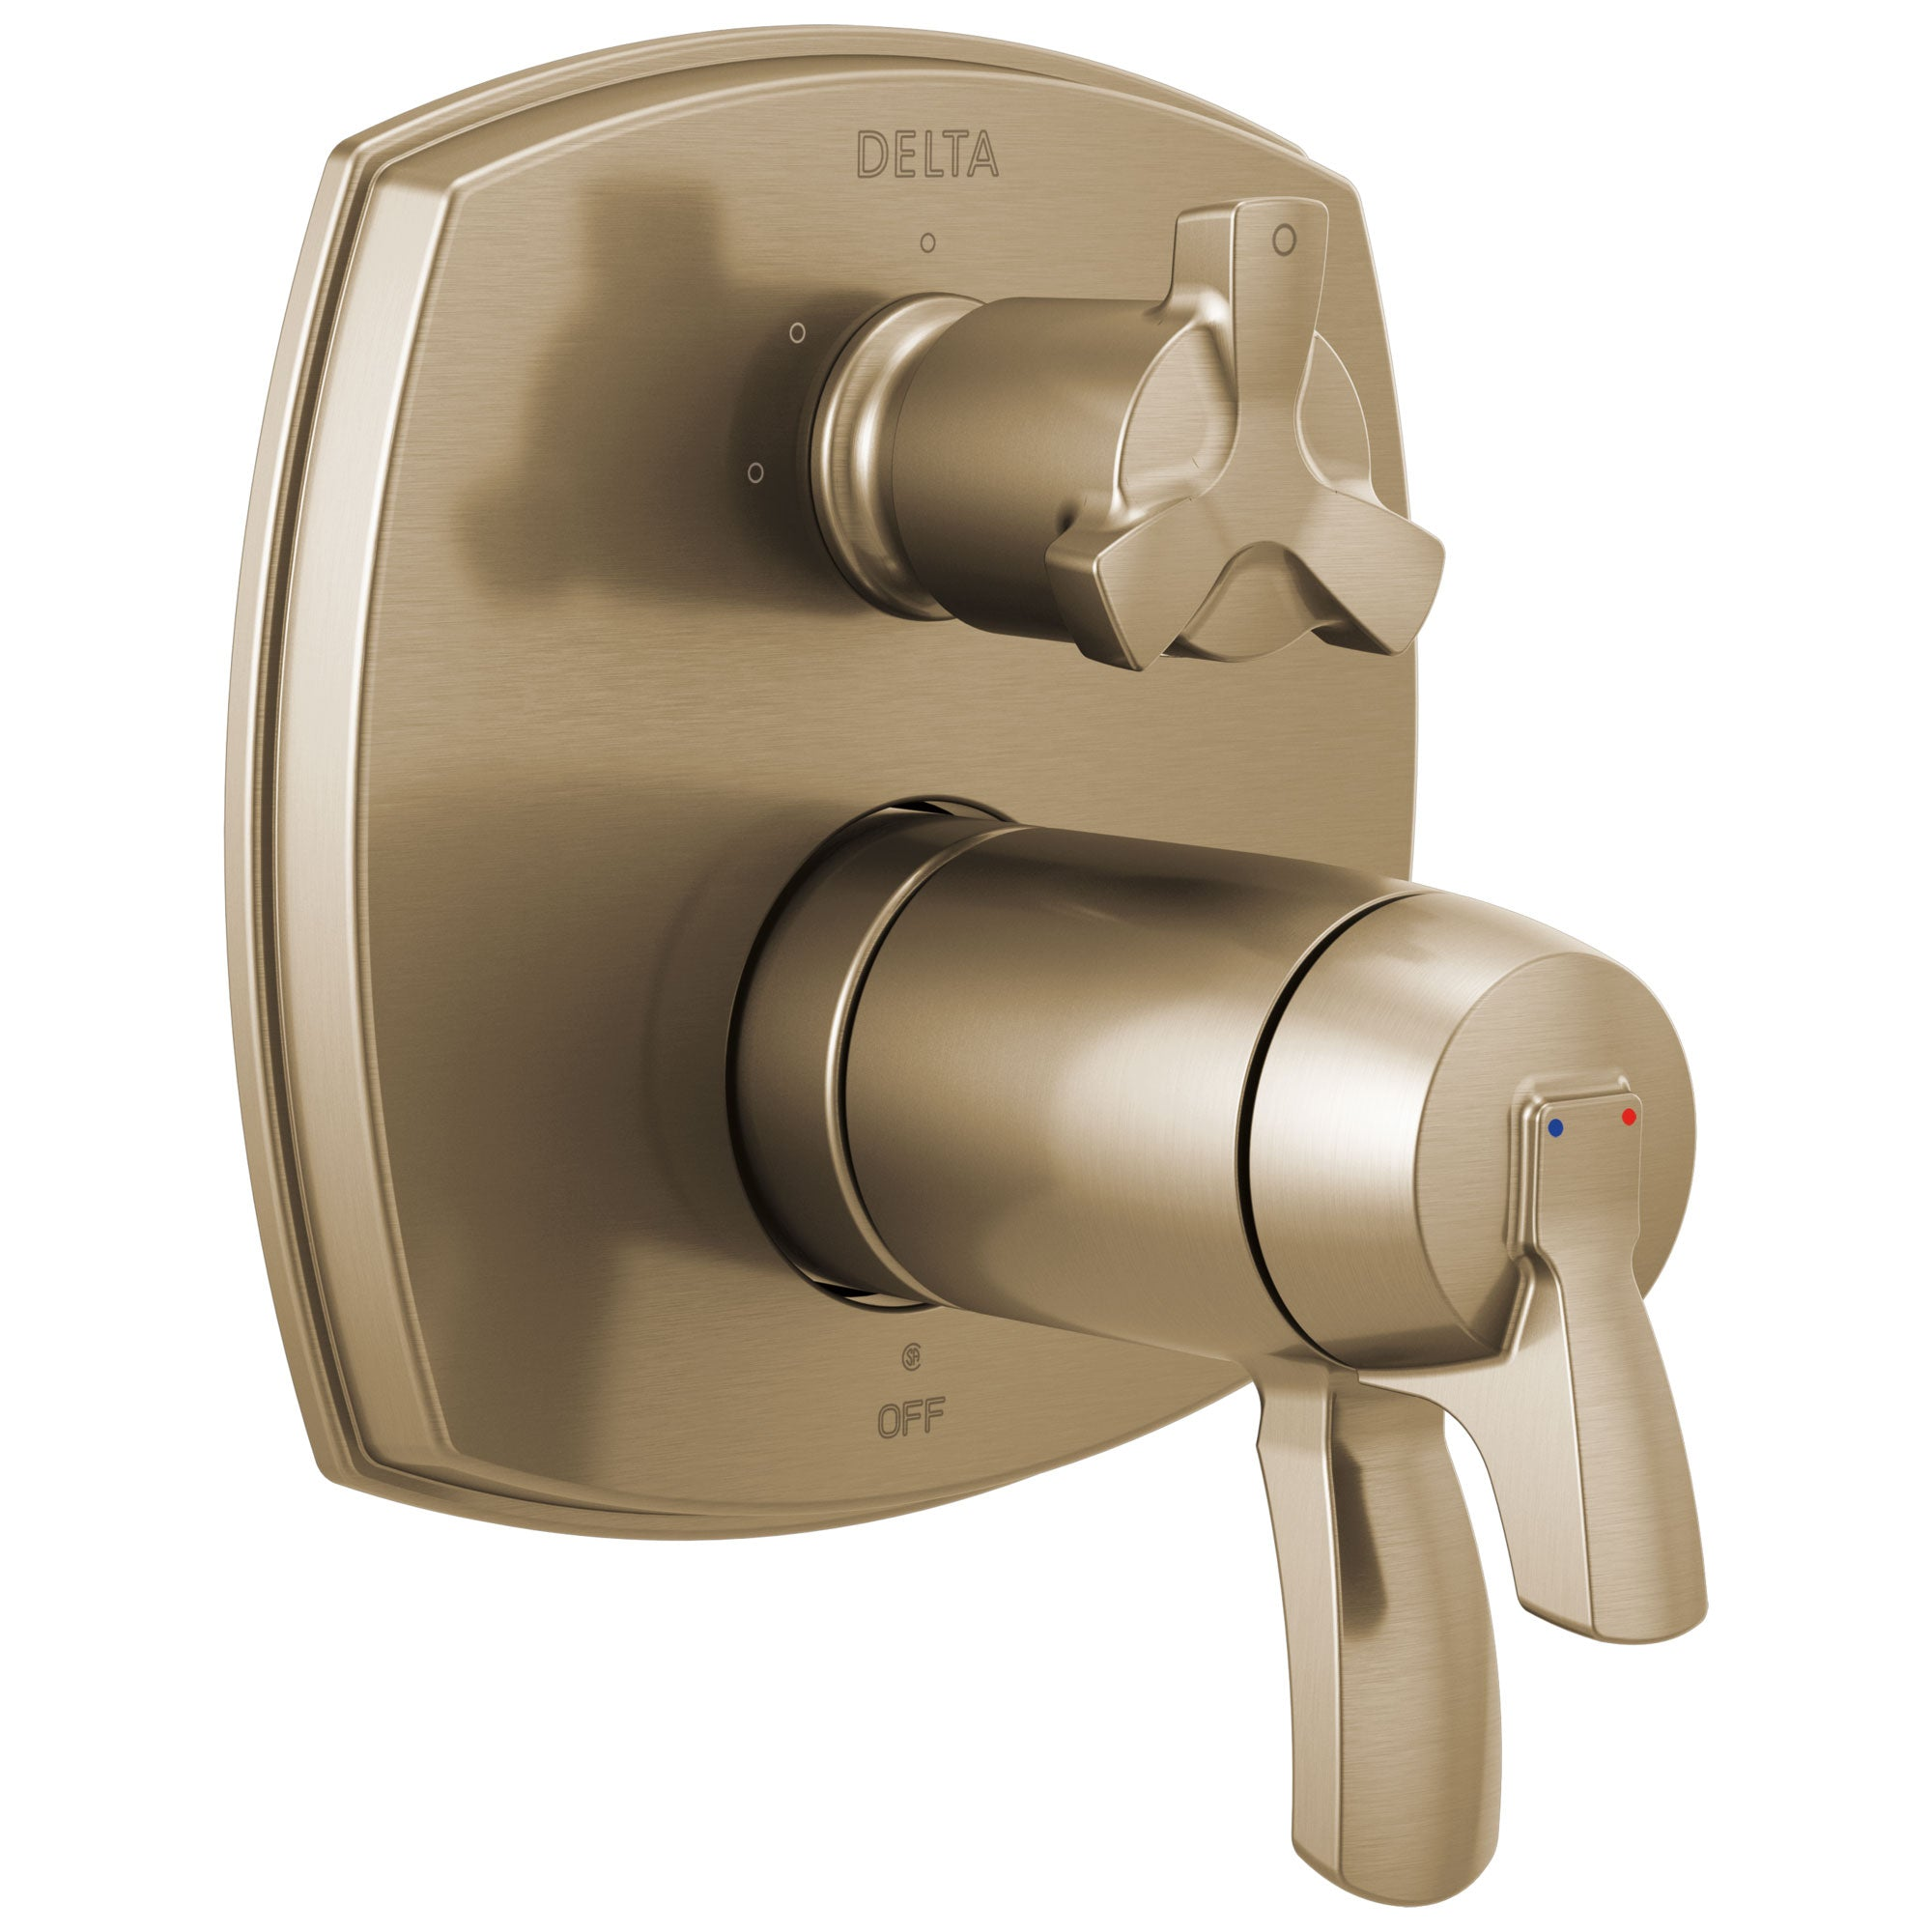 Delta Stryke Champagne Bronze Finish 3-setting Integrated Cross Handle Diverter Thermostatic Shower System Control Includes Valve and Handles D3101V